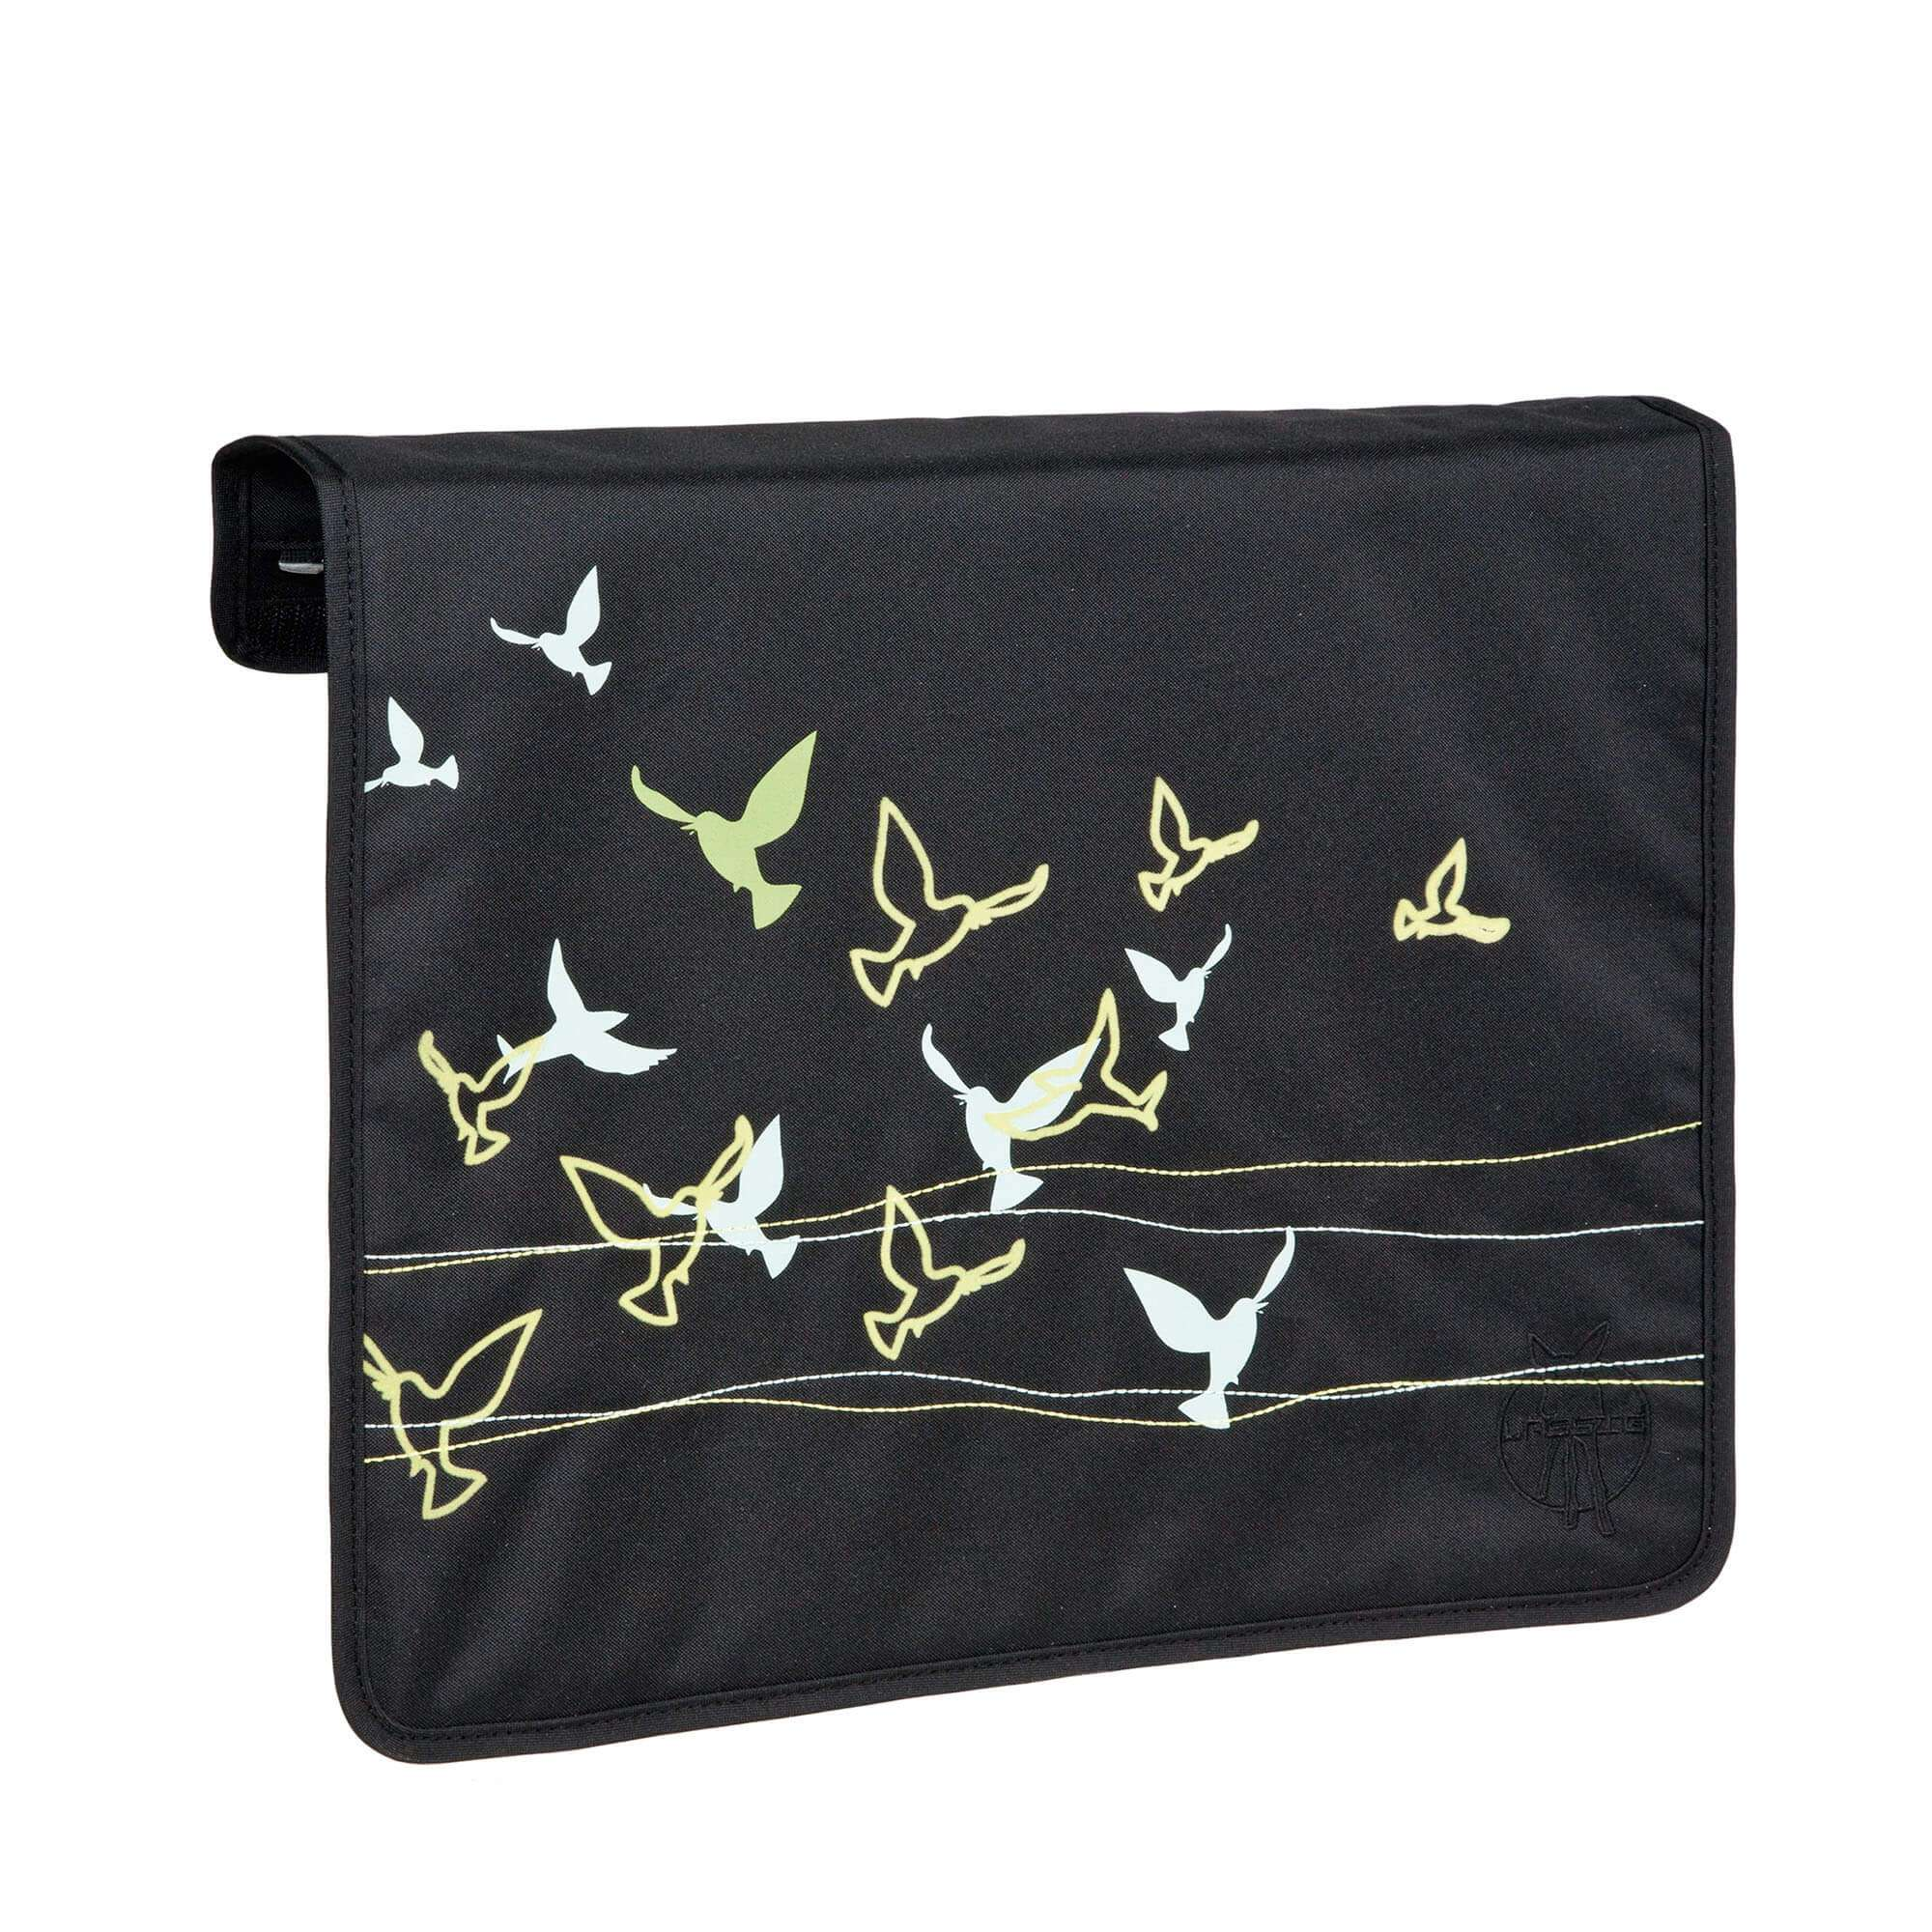 Rabat interchangeable Lassig Messenger Bag Casual Flock of Birds ebony gris rBAJRmaJz